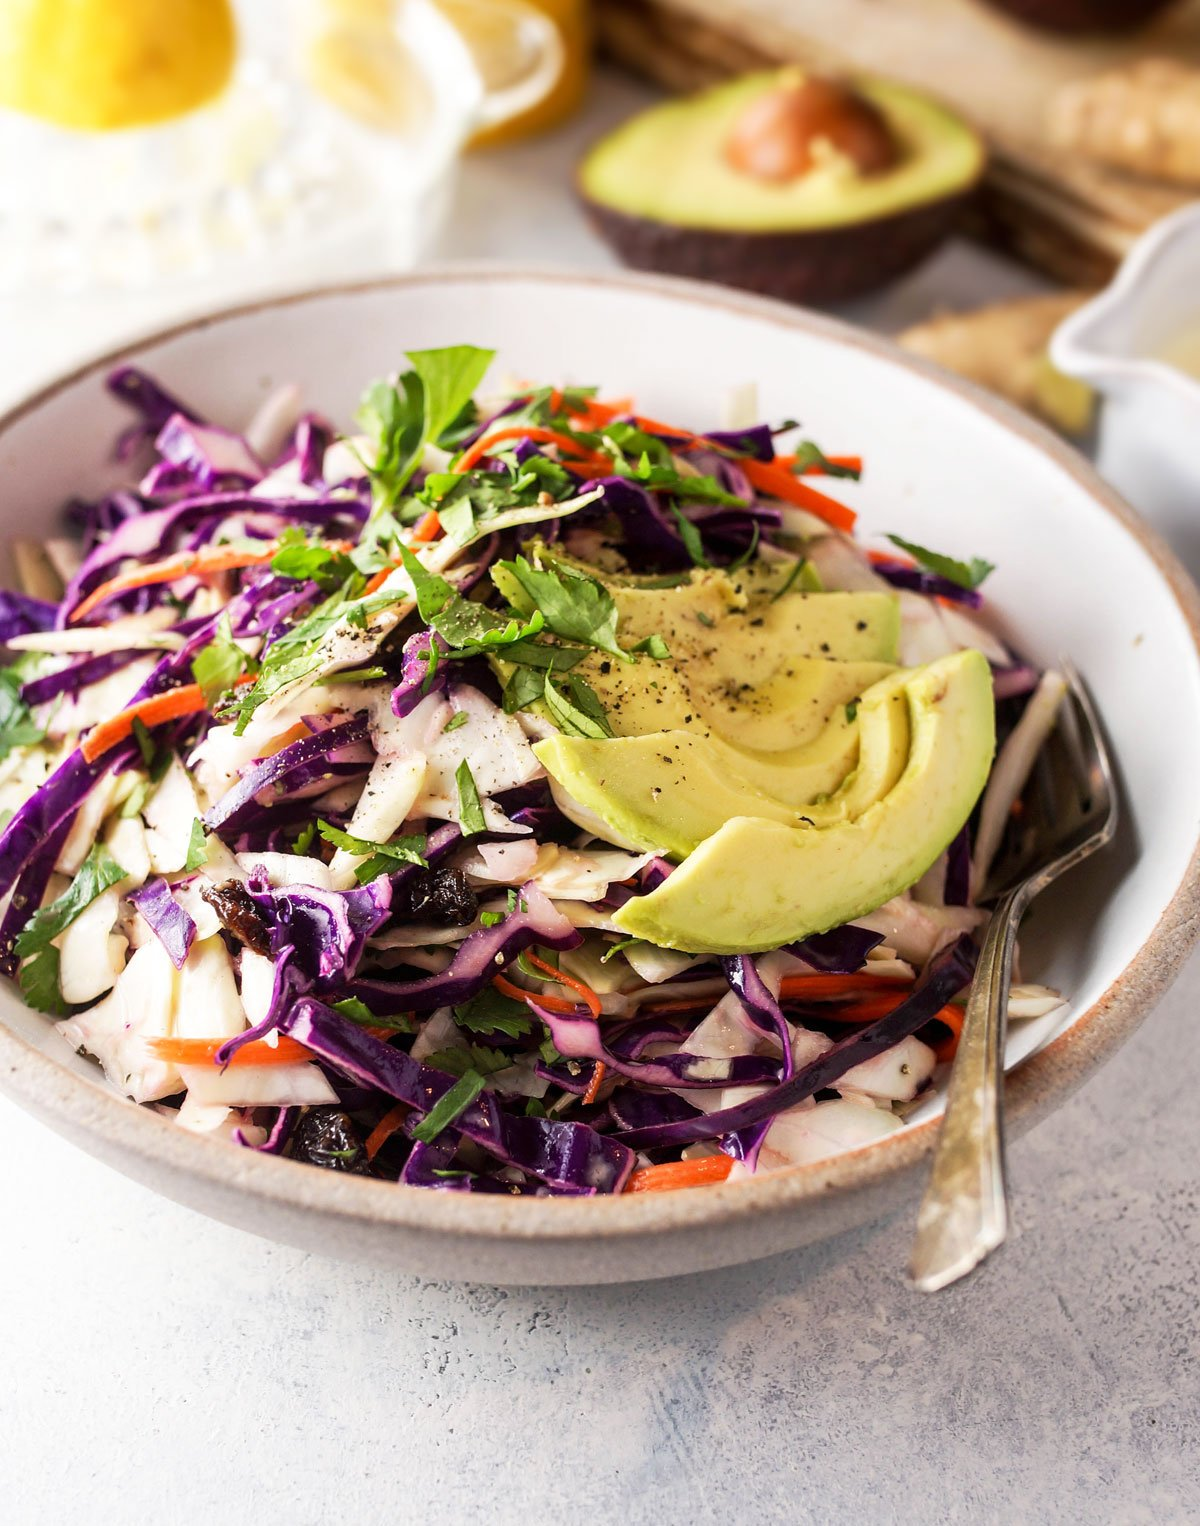 bowl of detox salad with lemon ginger dressing and slices of avocado on top